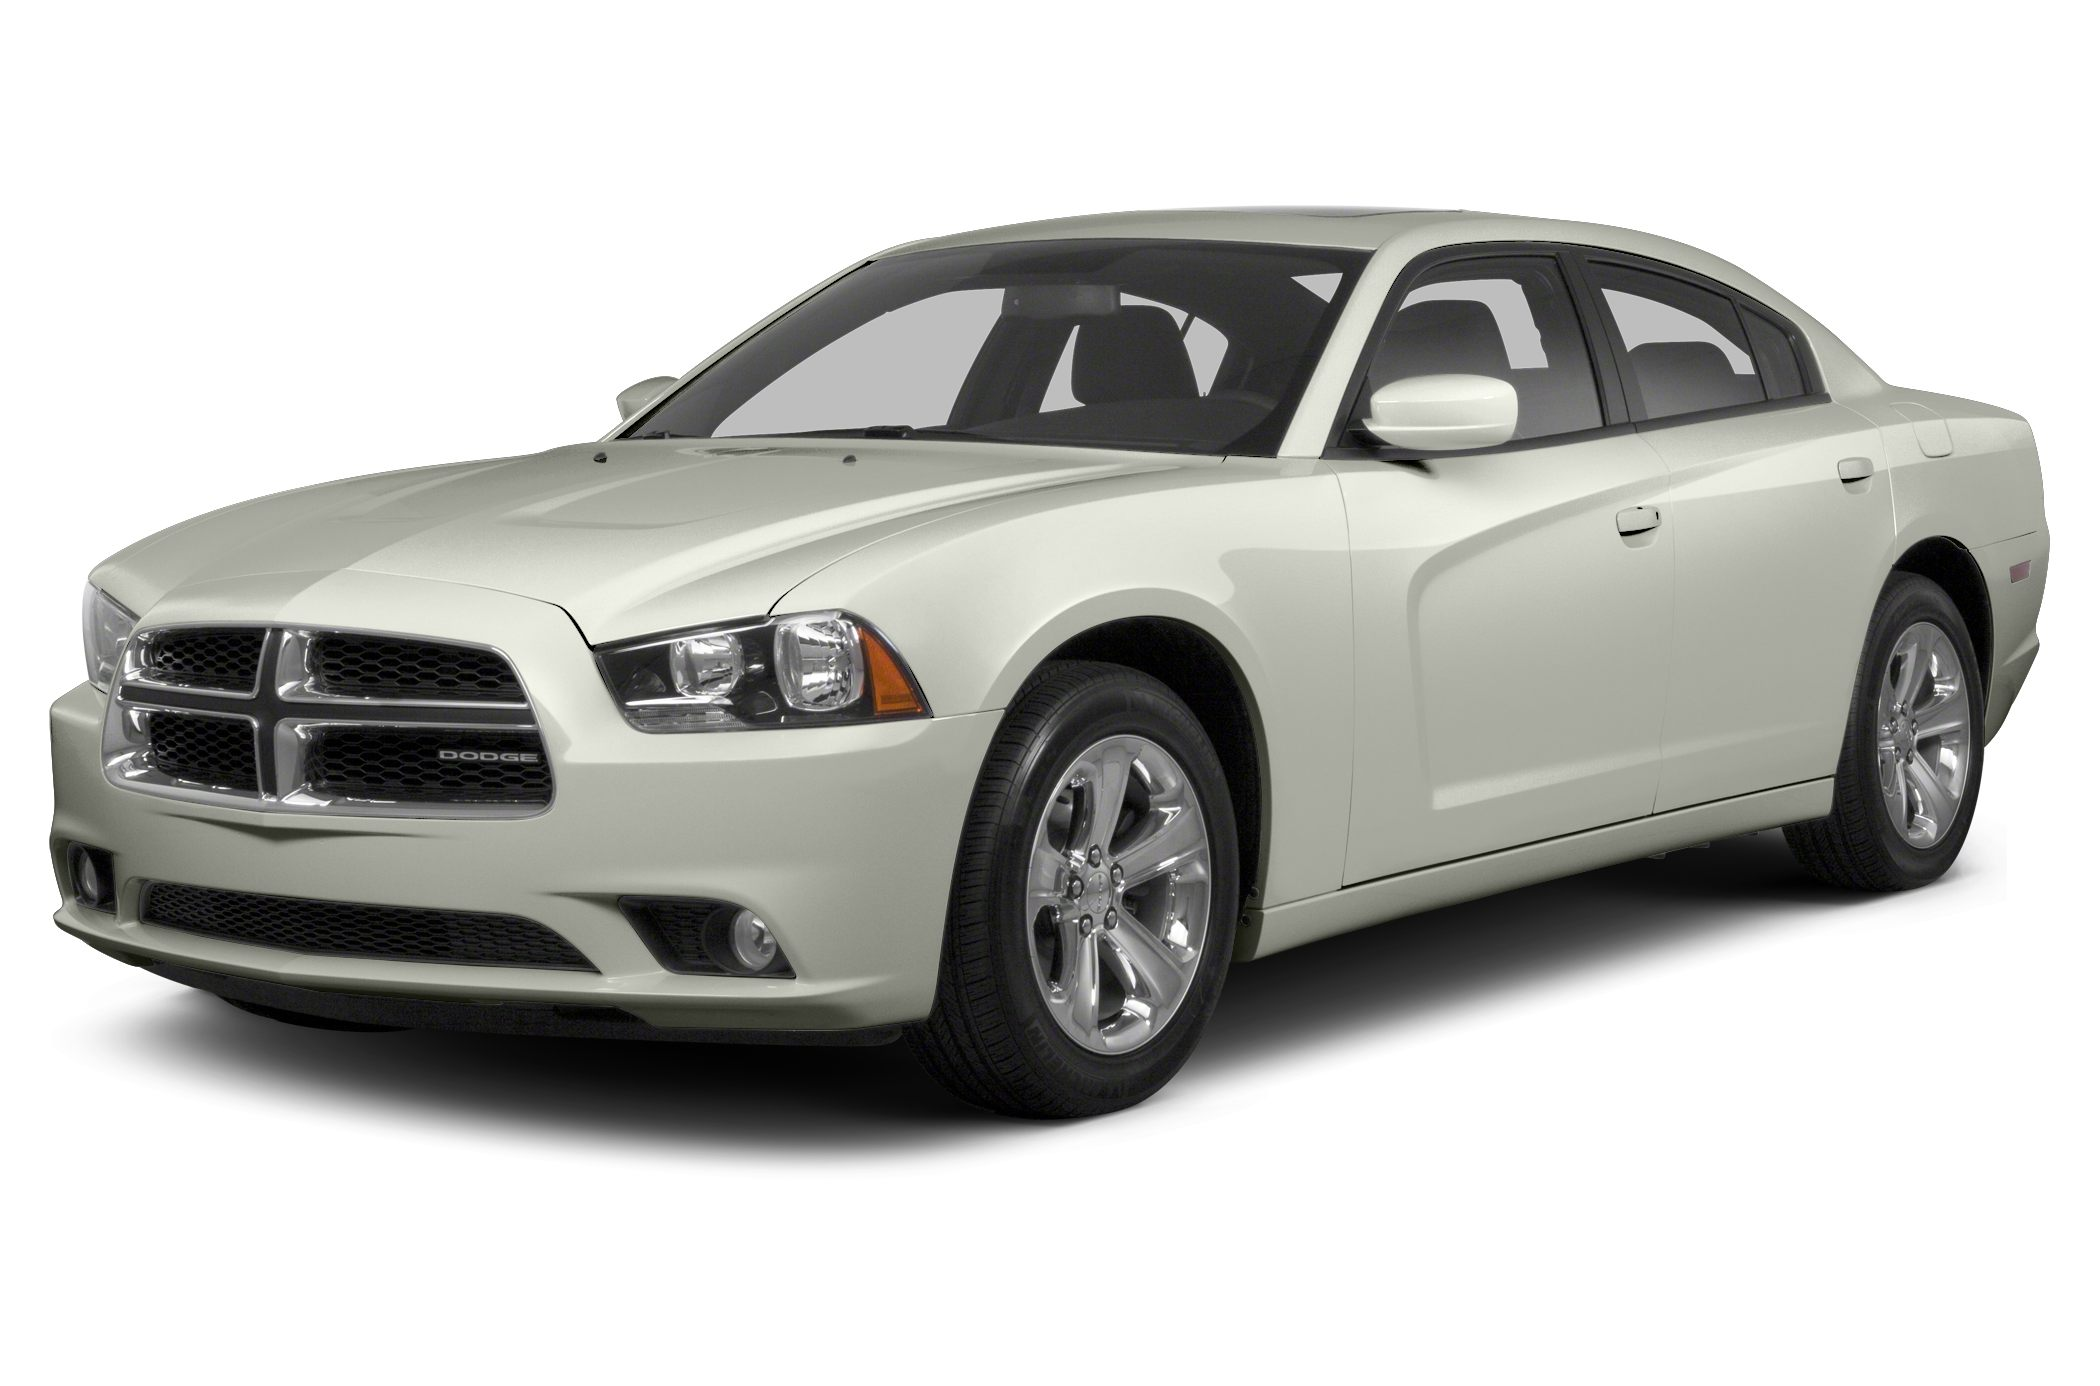 2013 Dodge Charger R/T Sedan for sale in Orlando for $27,998 with 19,220 miles